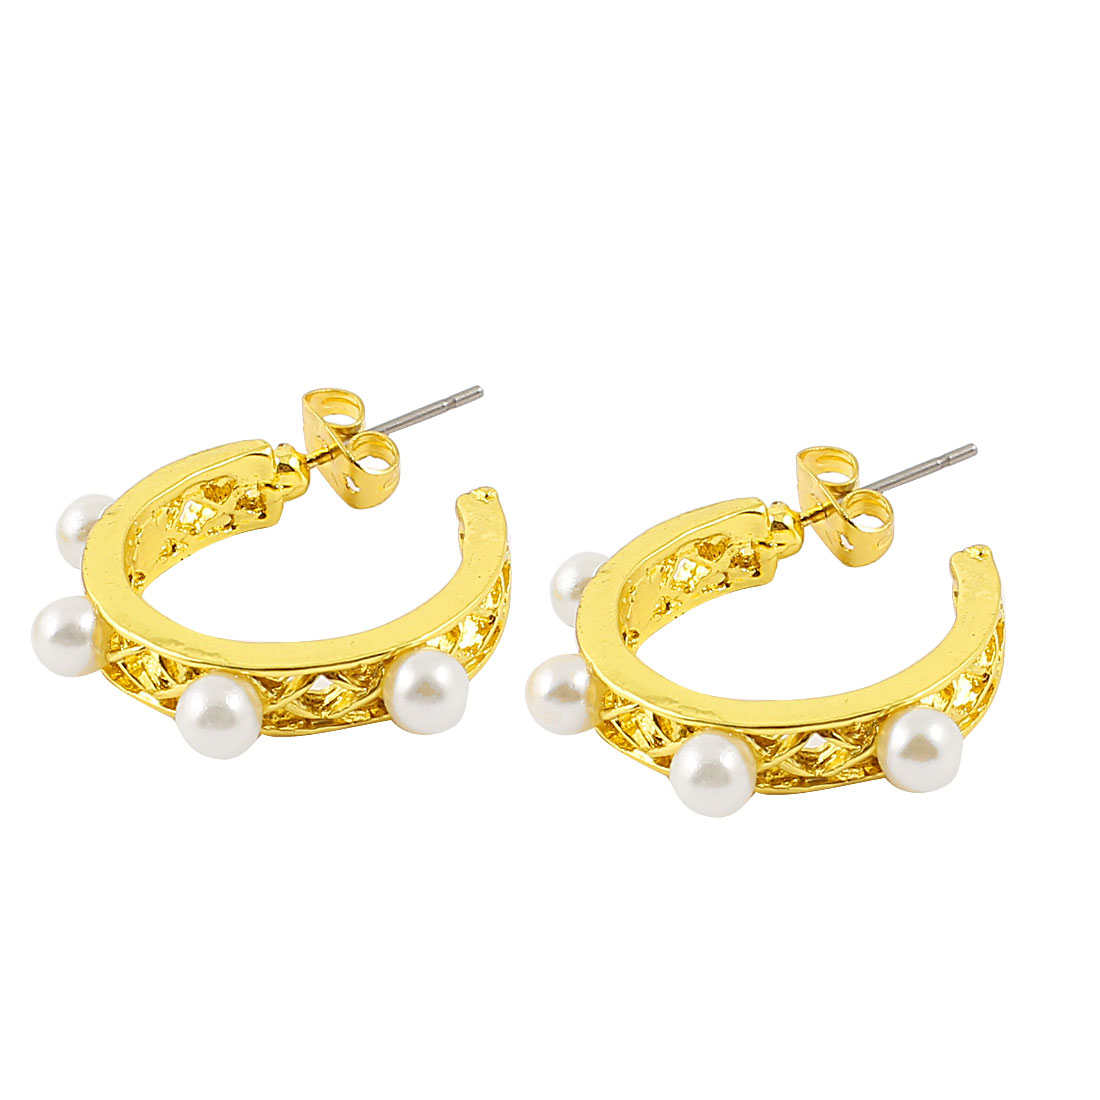 Pair Gold Tone Metal Hollow Out Hoop Earrings Eardrops for Ladies